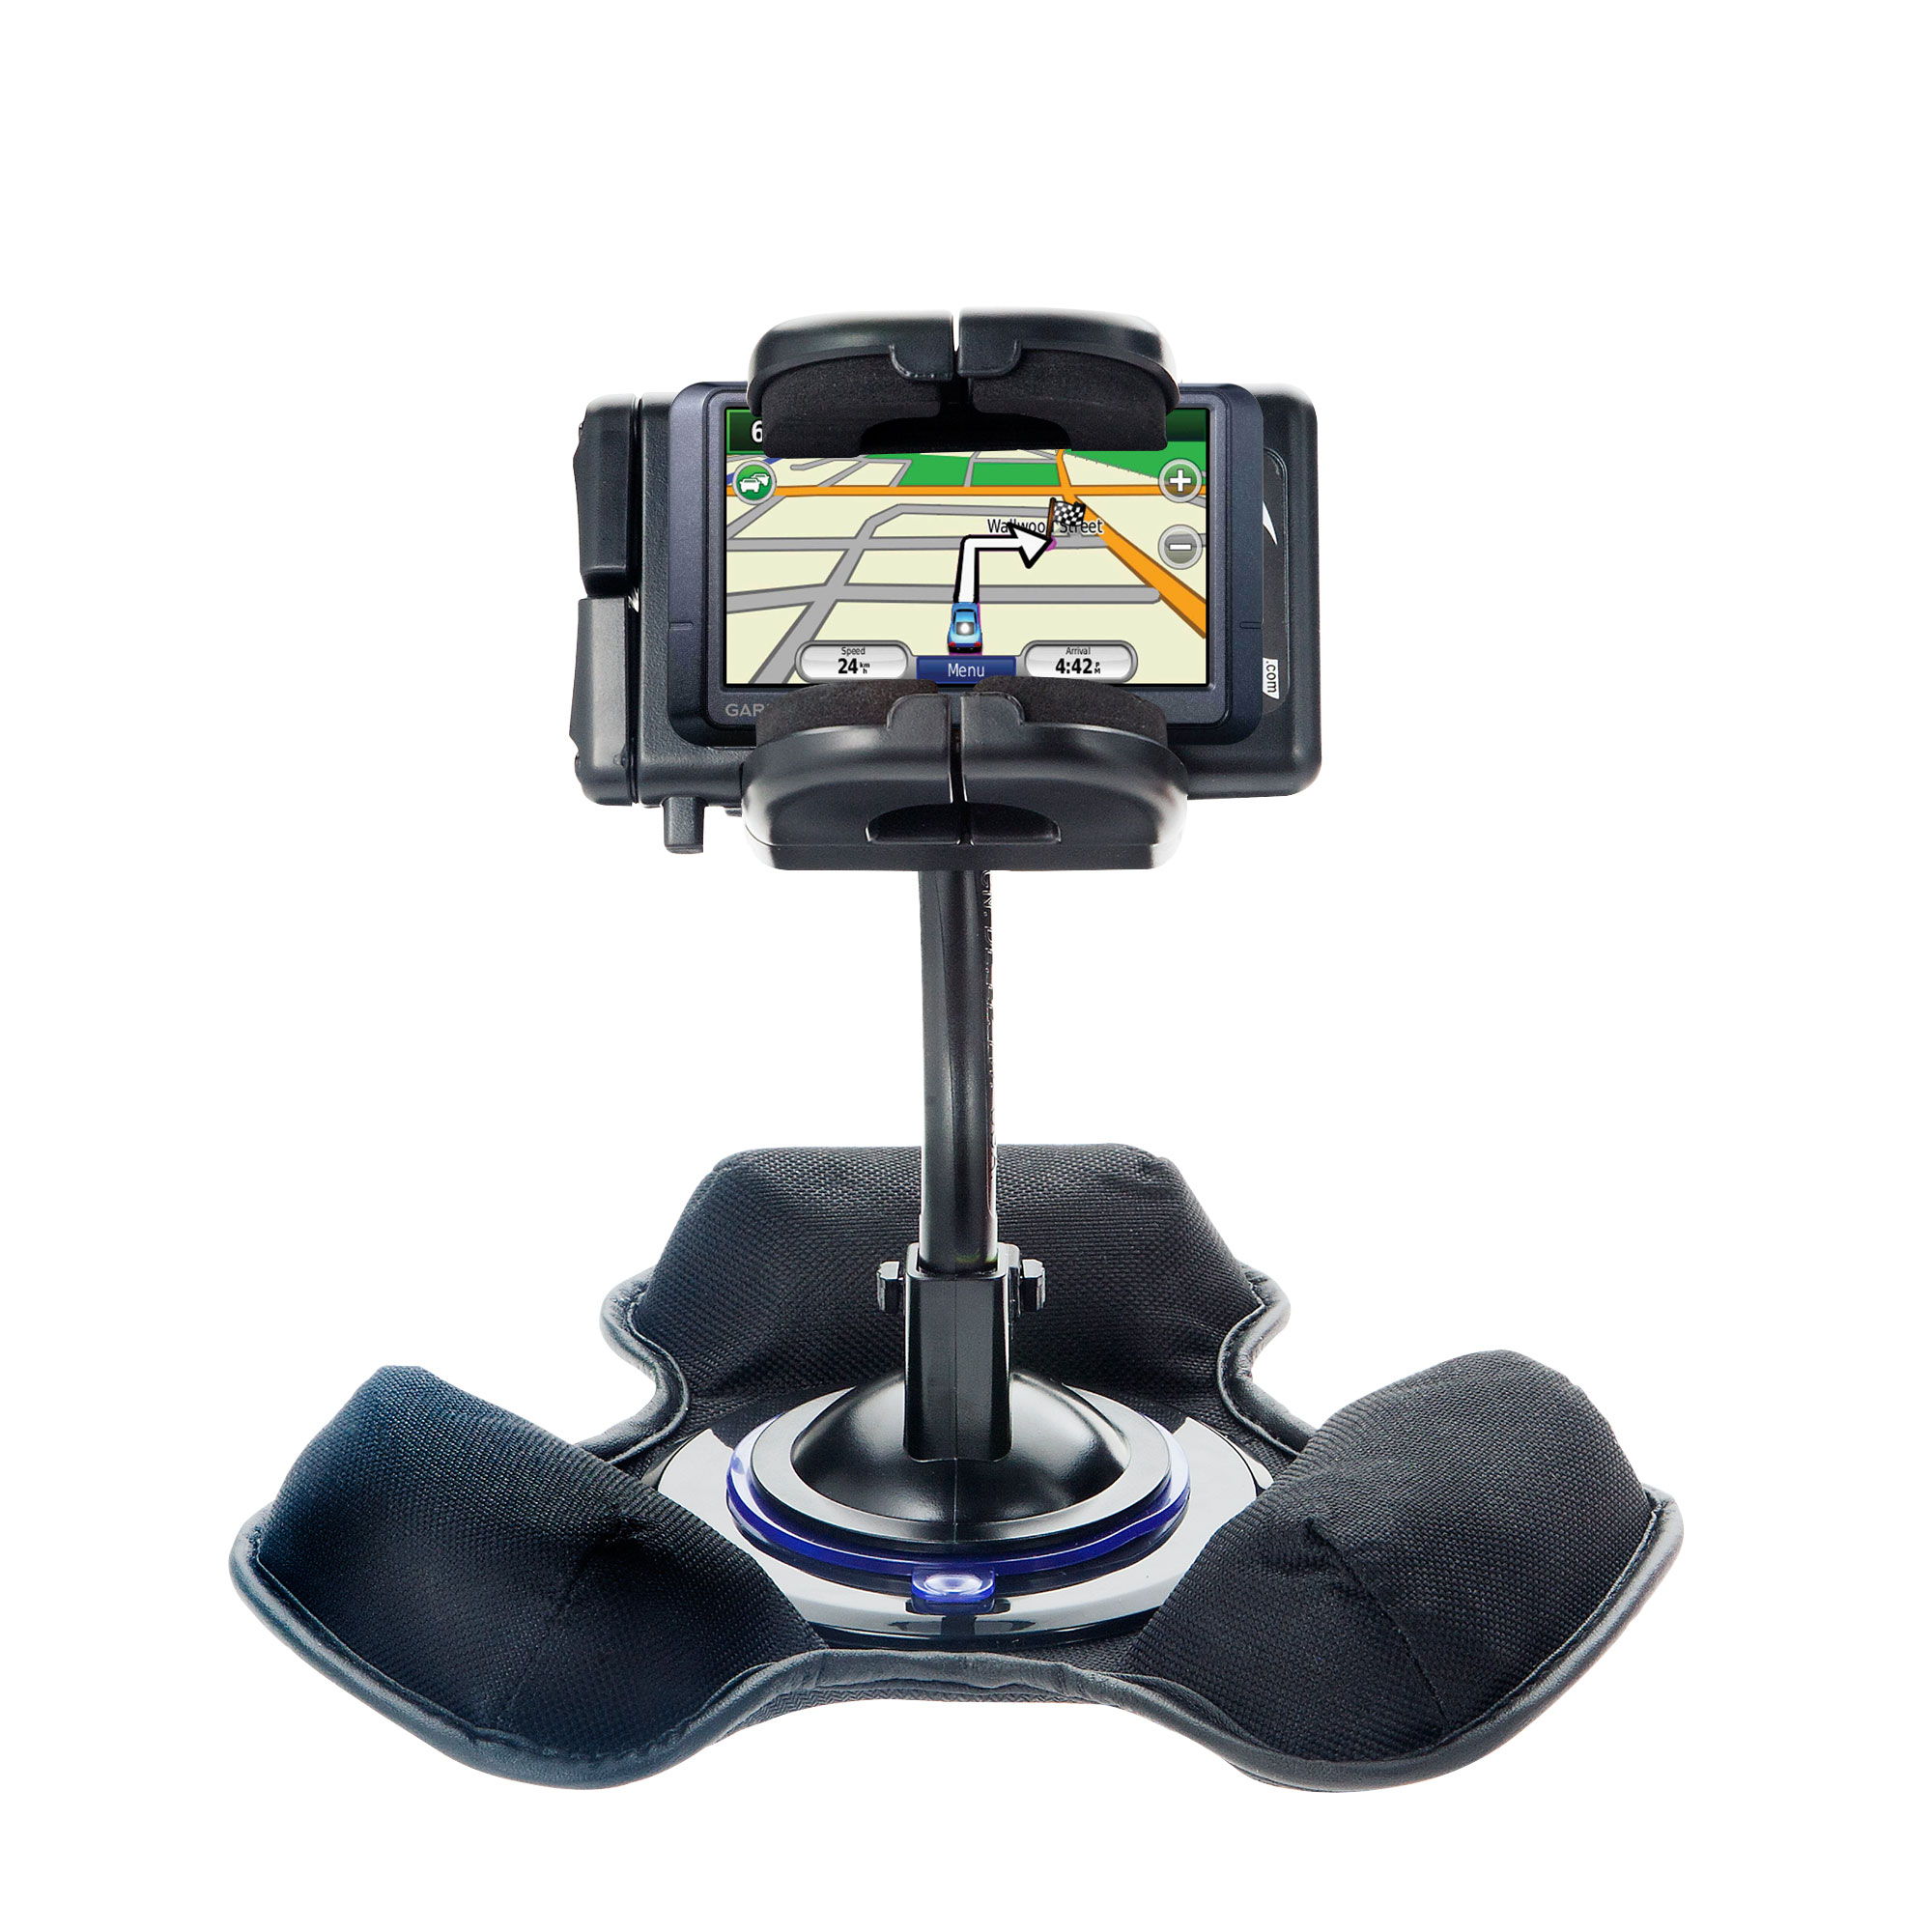 Dash and Windshield Holder compatible with the Garmin Nuvi 265T